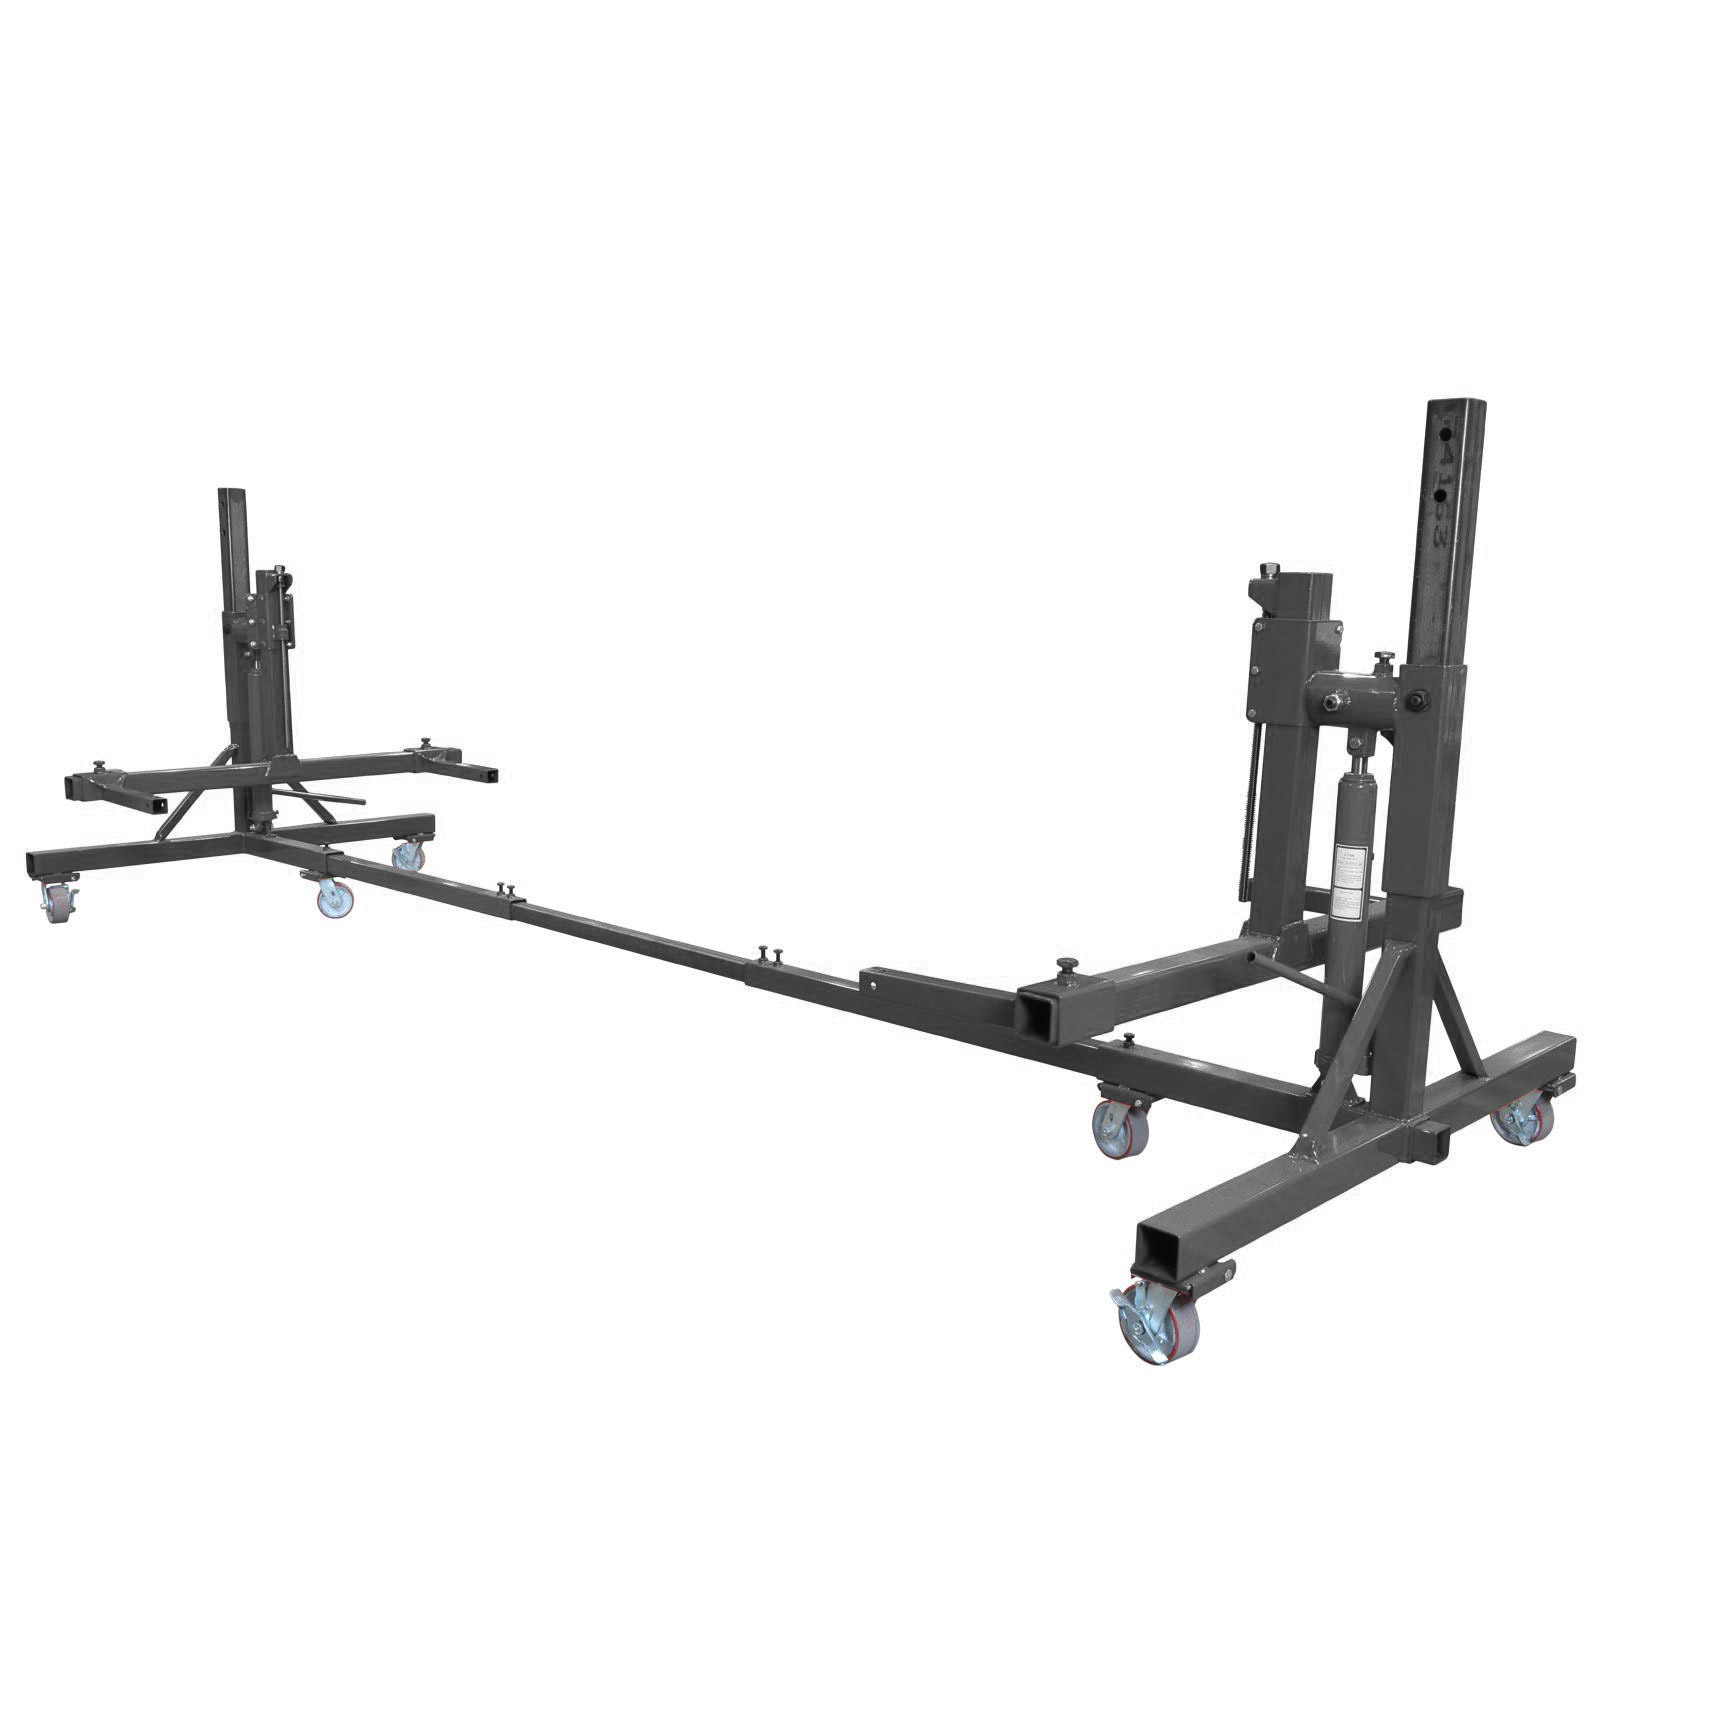 Motorcycle Lift Table Plans Ebook